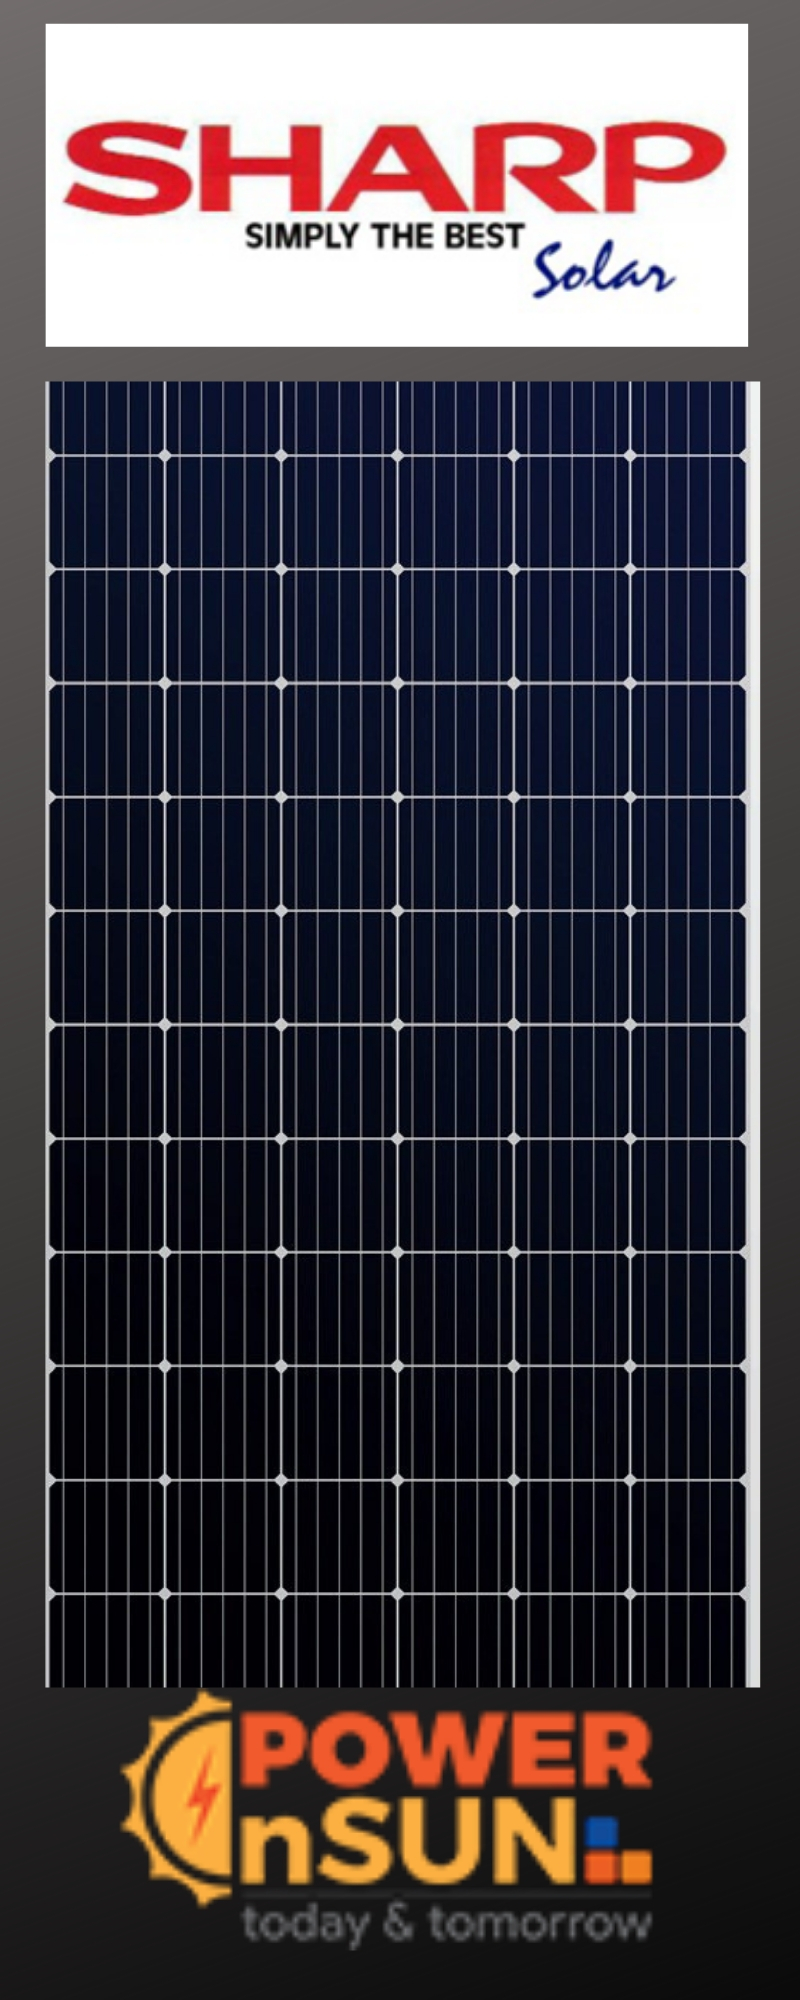 BUY SHARP SOLAR PANELS AT WHOLESALE PRICE FROM POWER N SUN